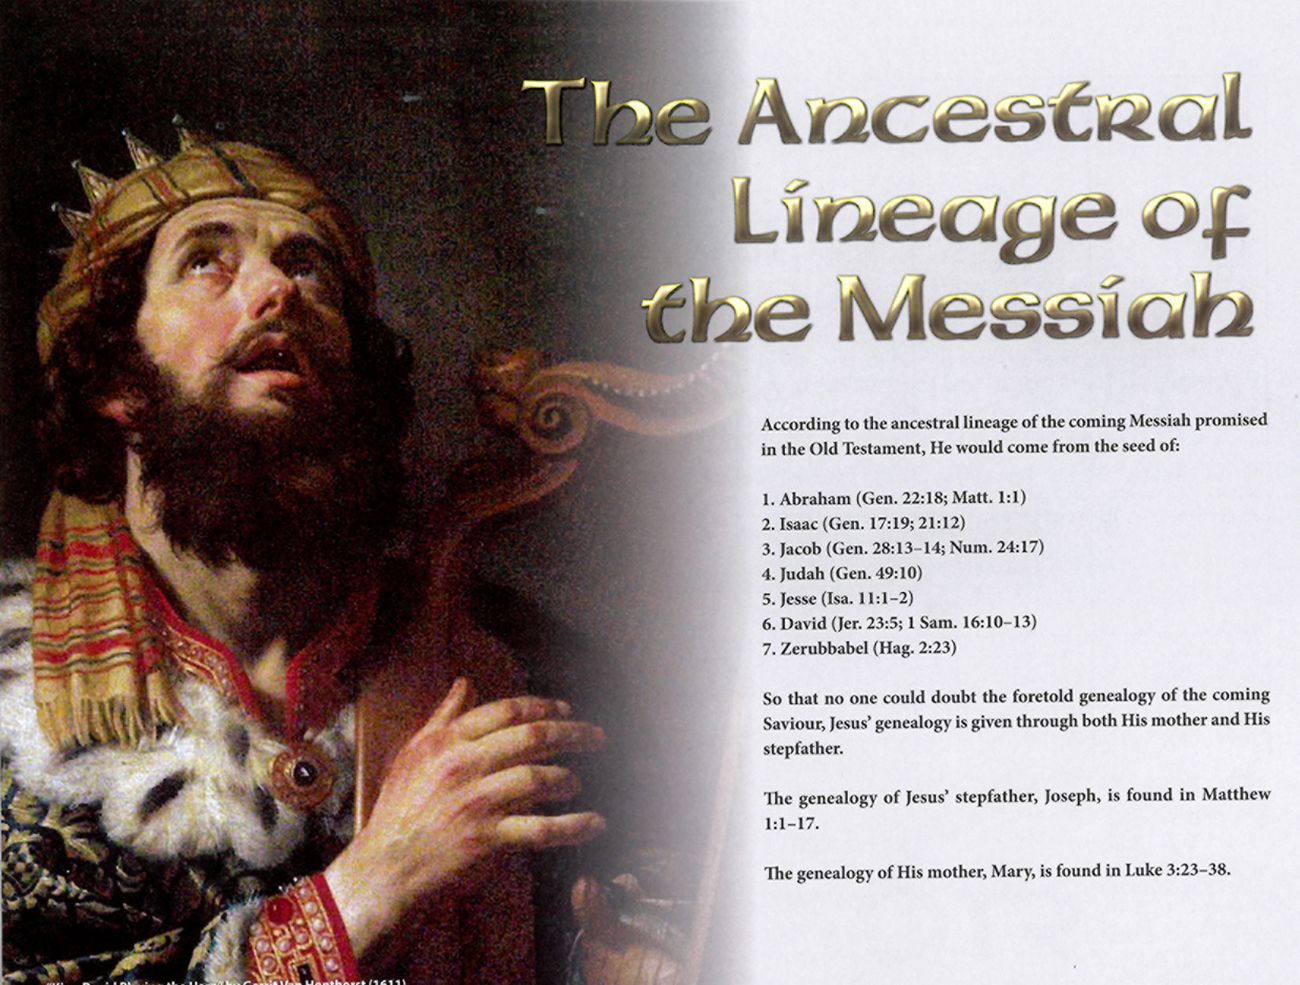 2013 Prophecy Calendar: February - The Ancestral Lieage of the Messiah